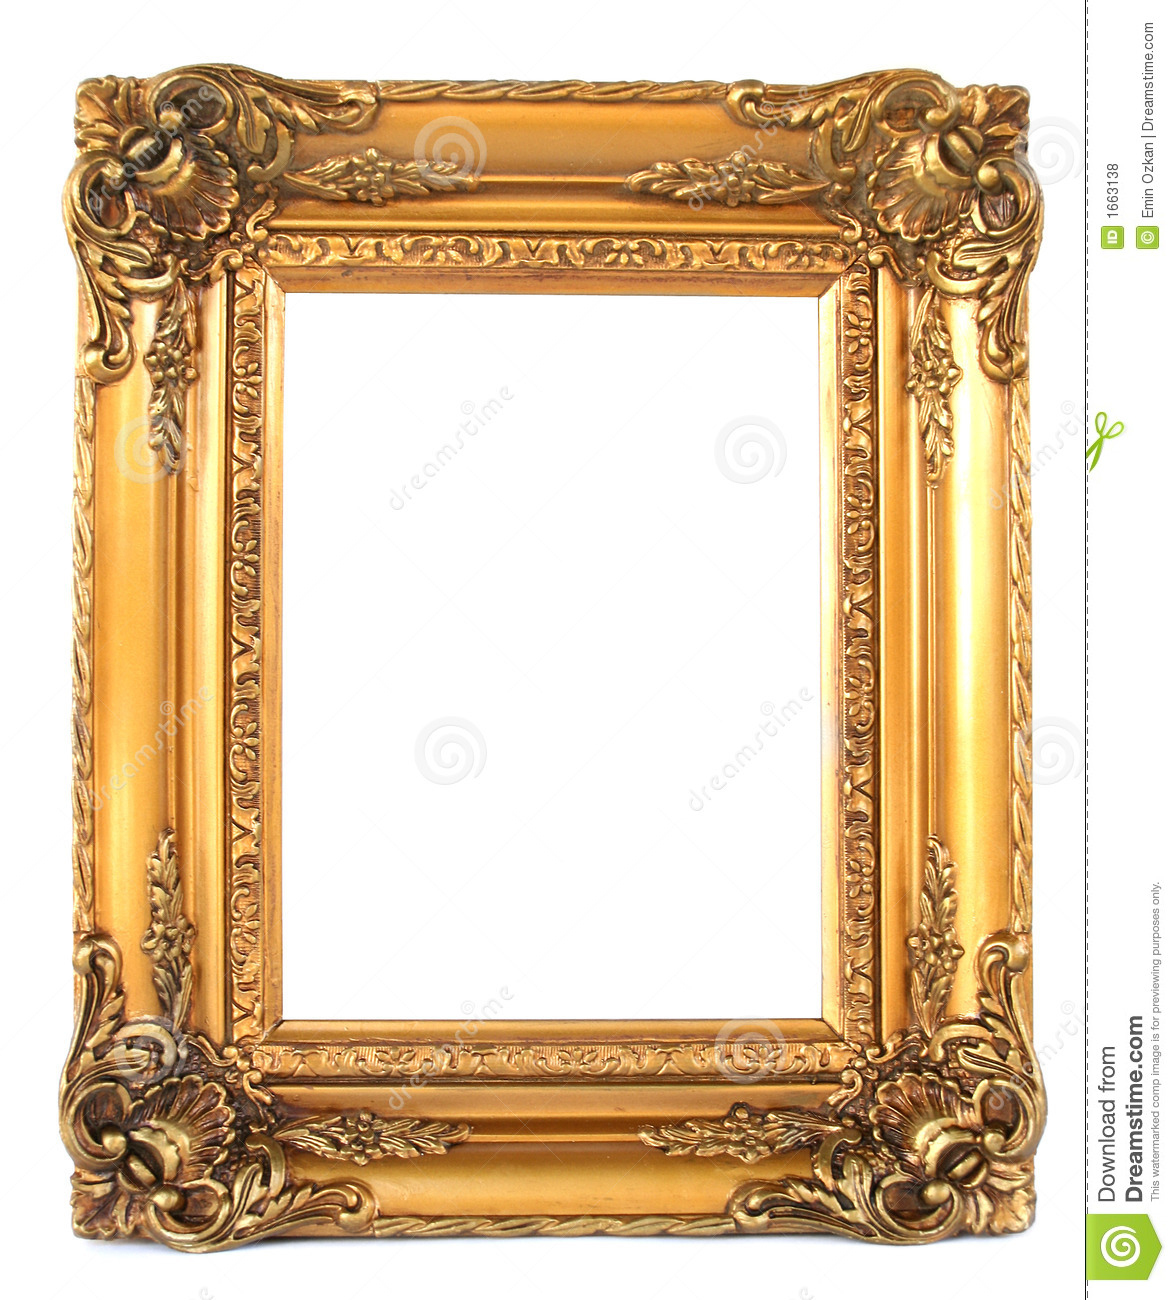 vintage frame stock photo image of blank goldy wood